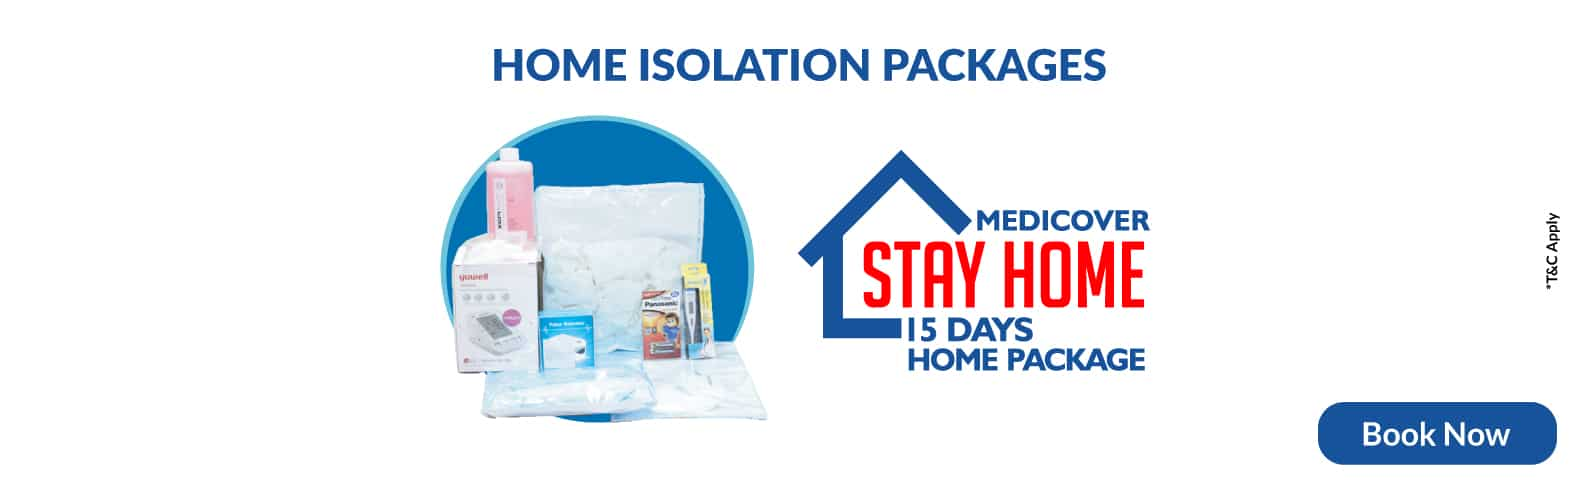 stay home 15 days package